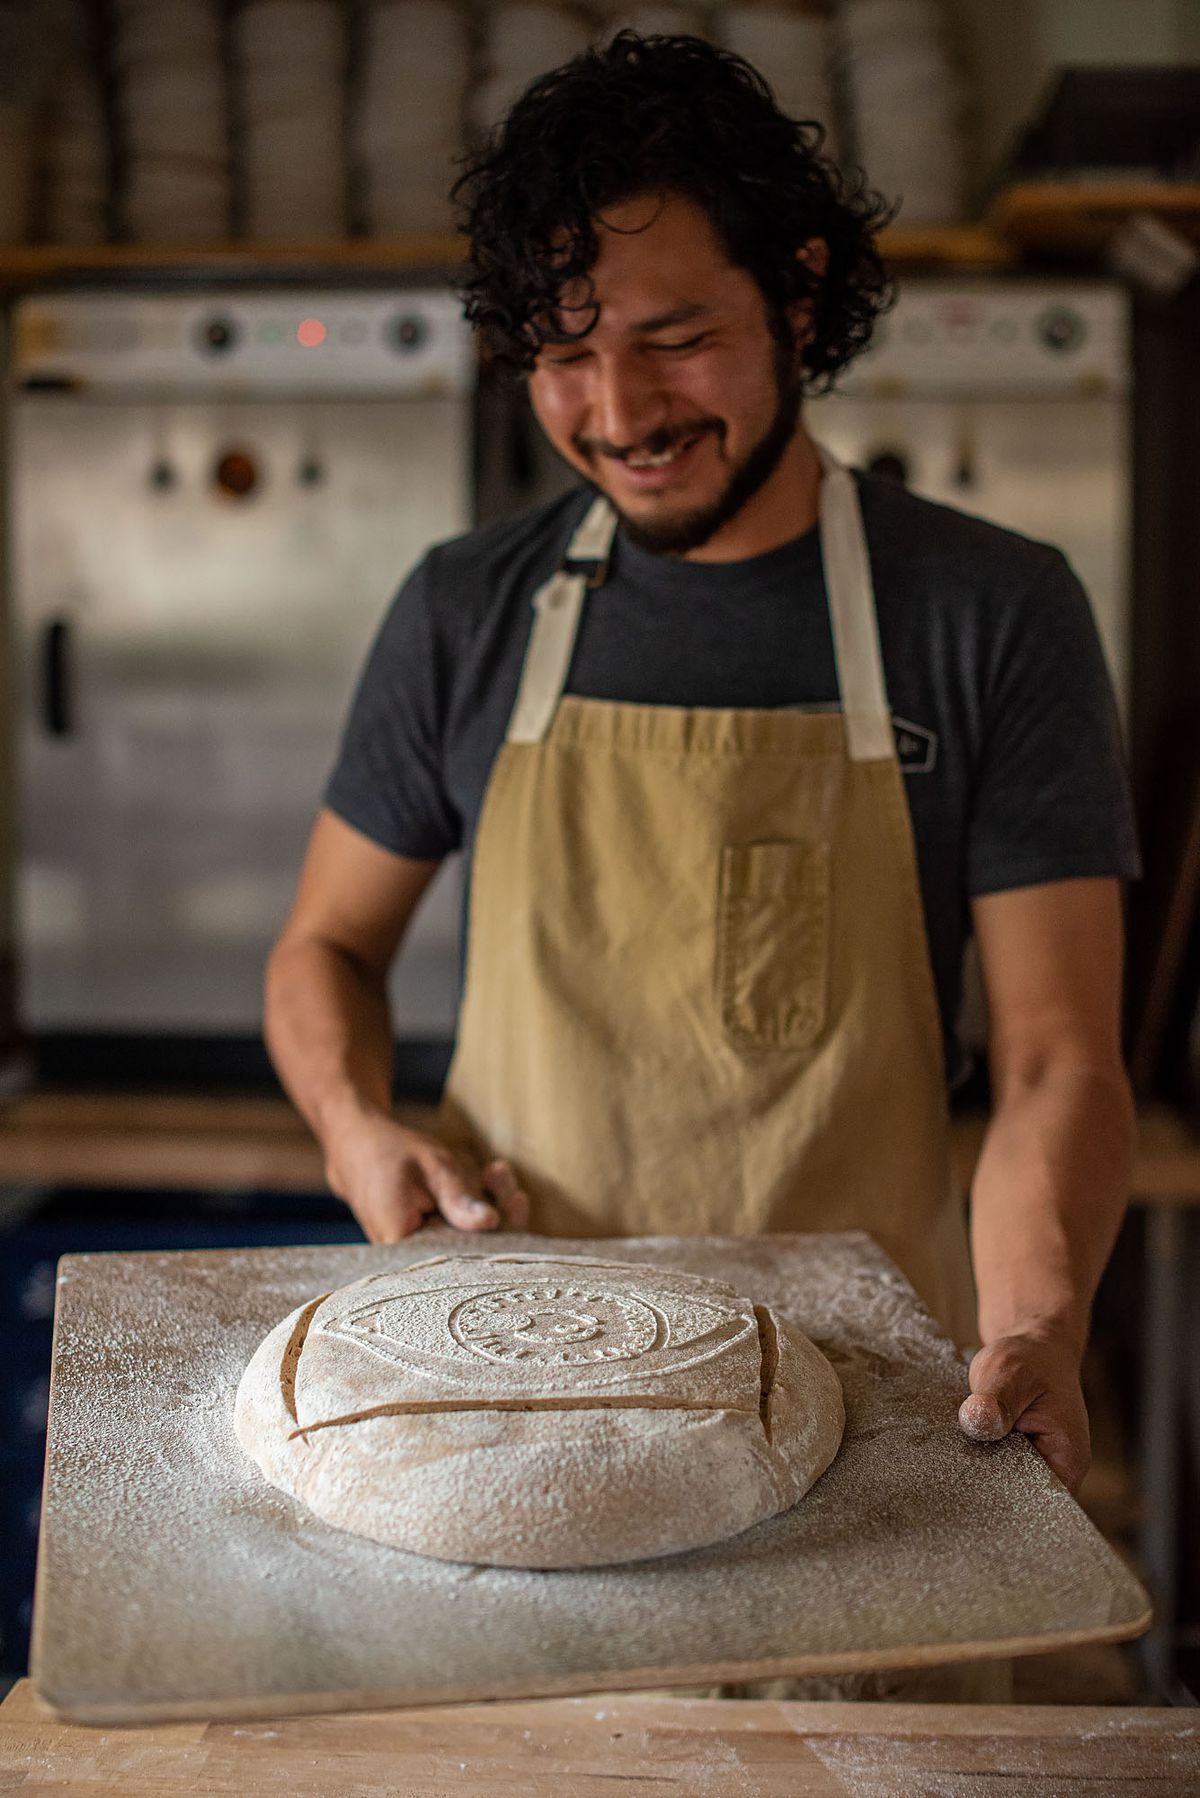 A baker smiles at his raw dough before sending it into the oven.